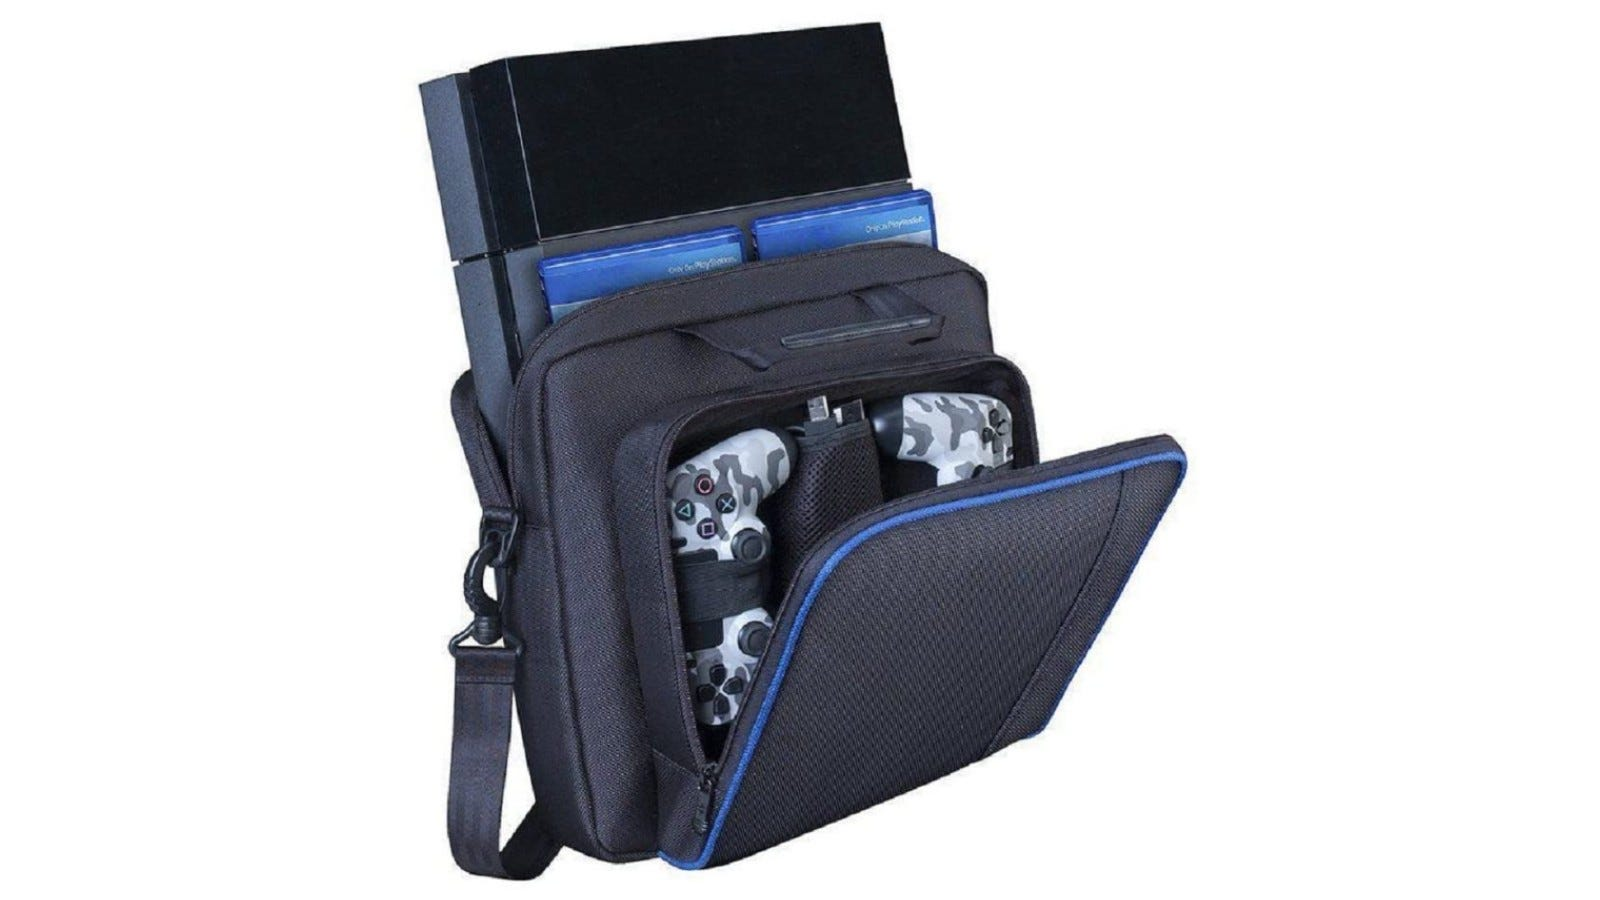 A premium carrying case for gaming consoles and accessories